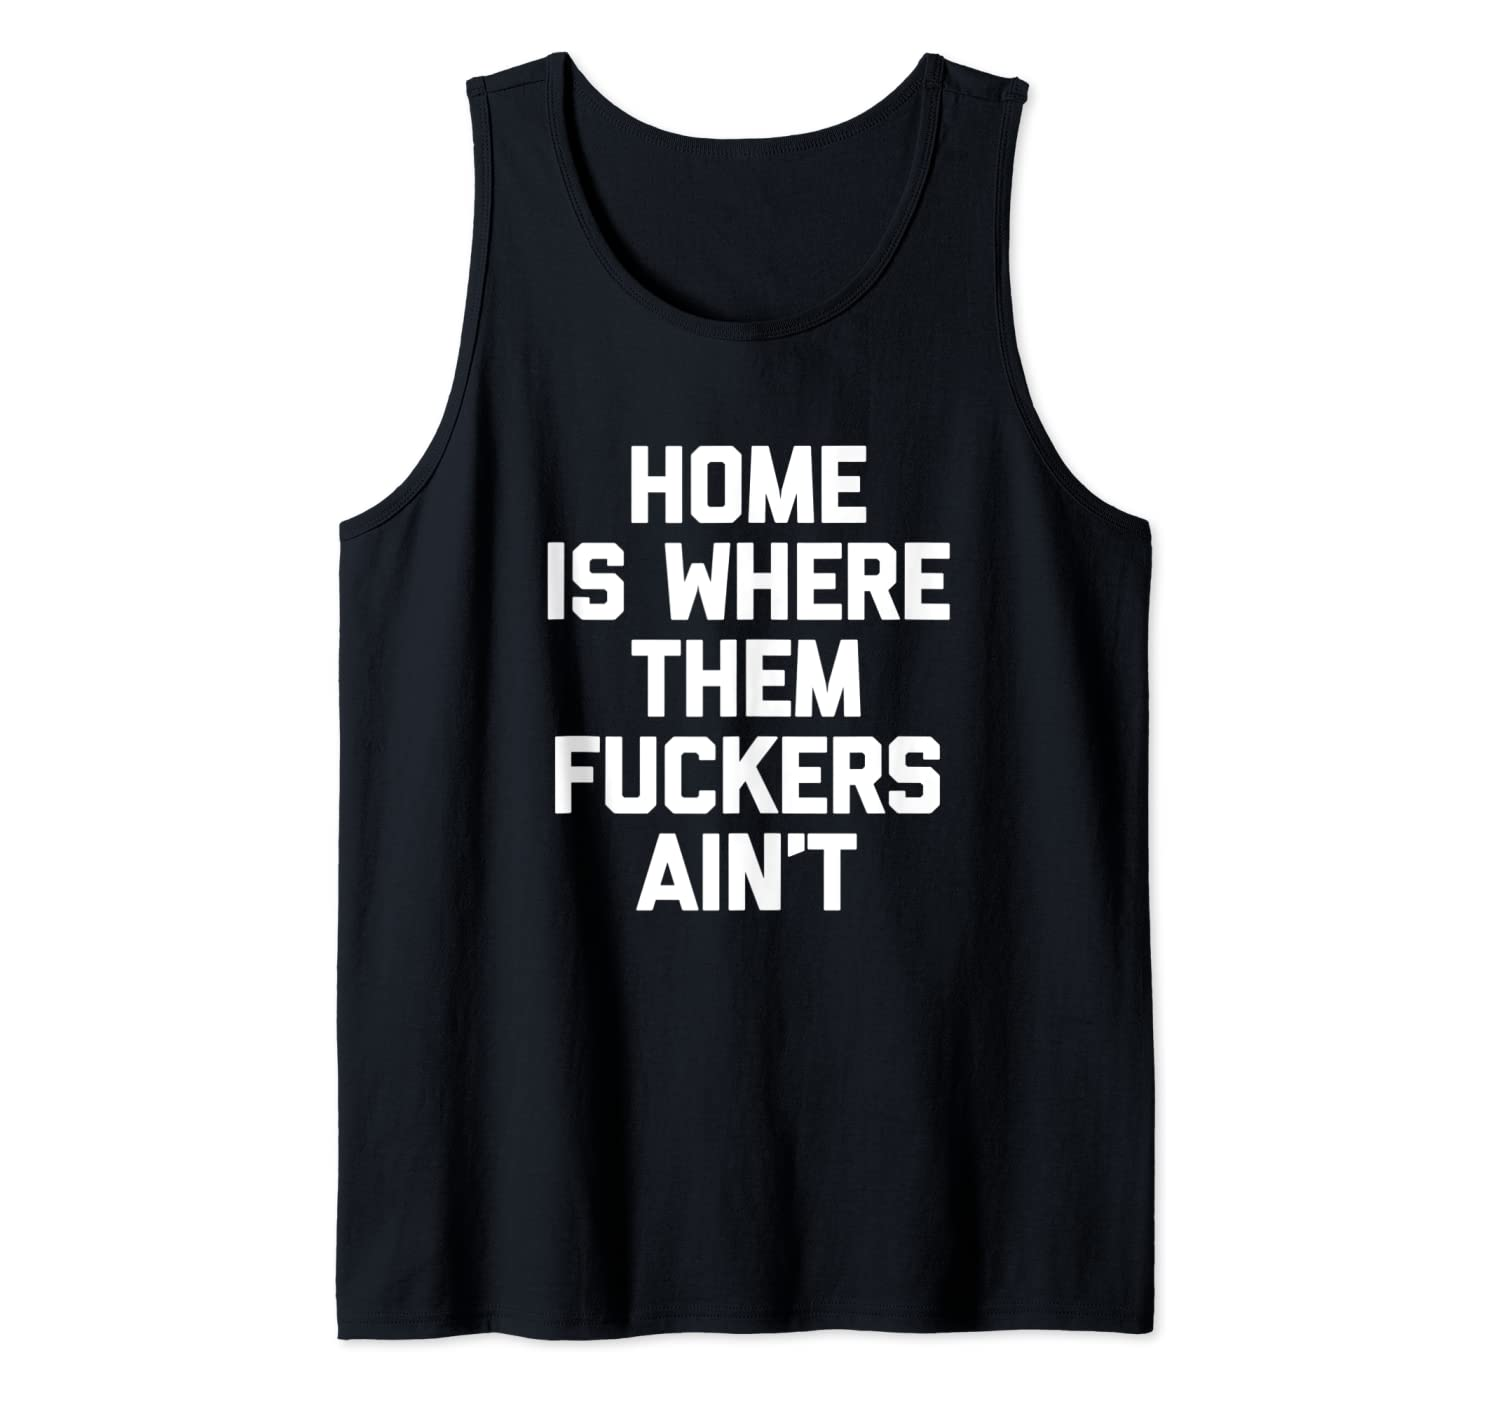 Home Is Where Them Fuckers Ain't T-Shirt funny saying cool Tank Top